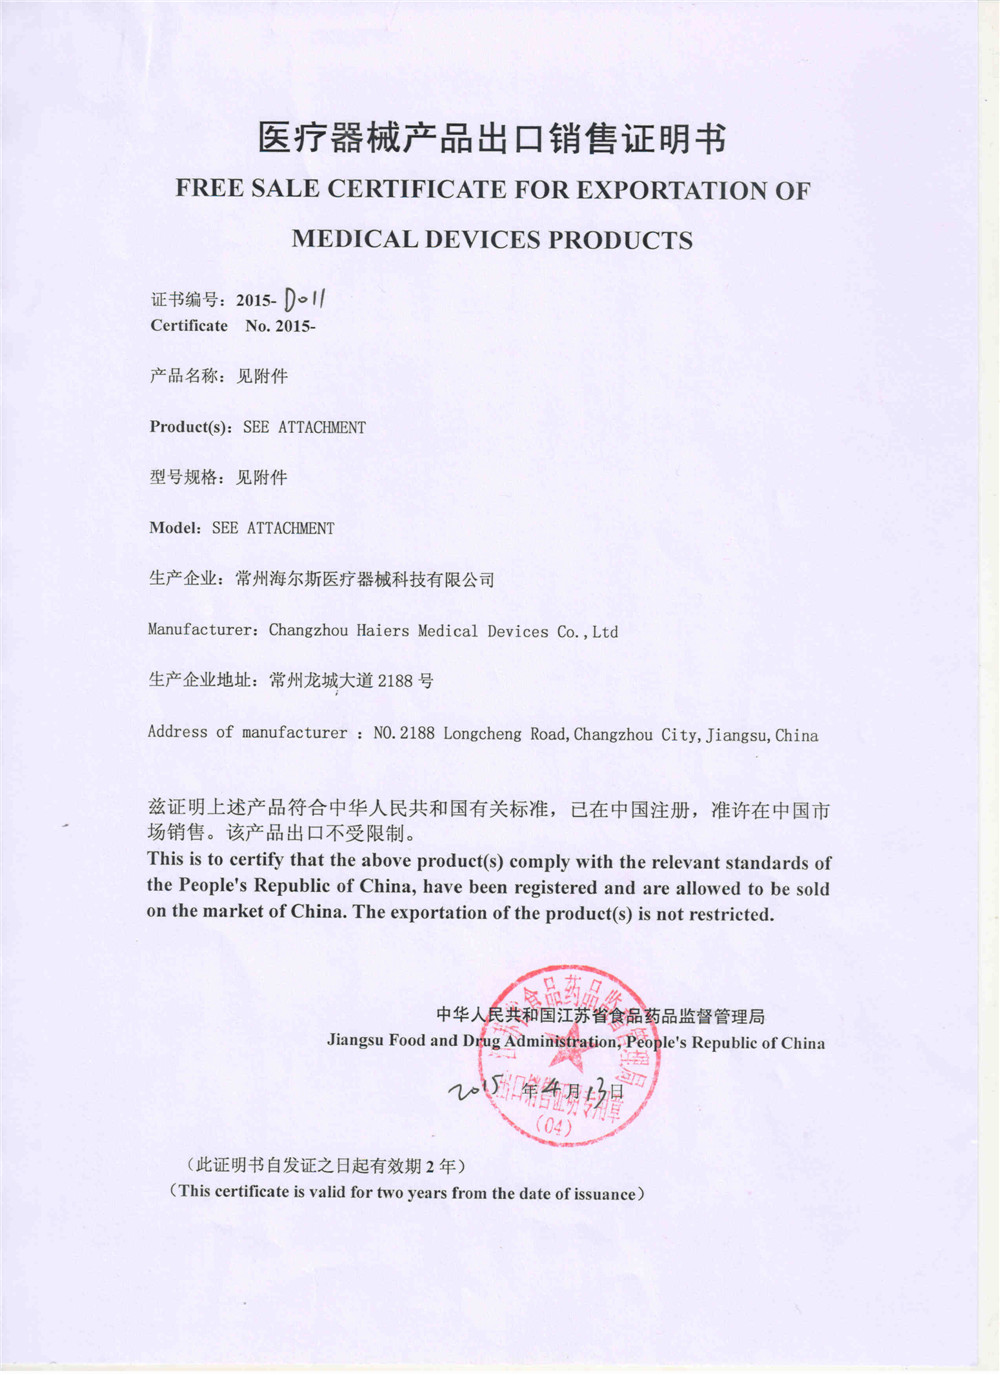 Free Sale Certificate for Exportation of Medical Devices